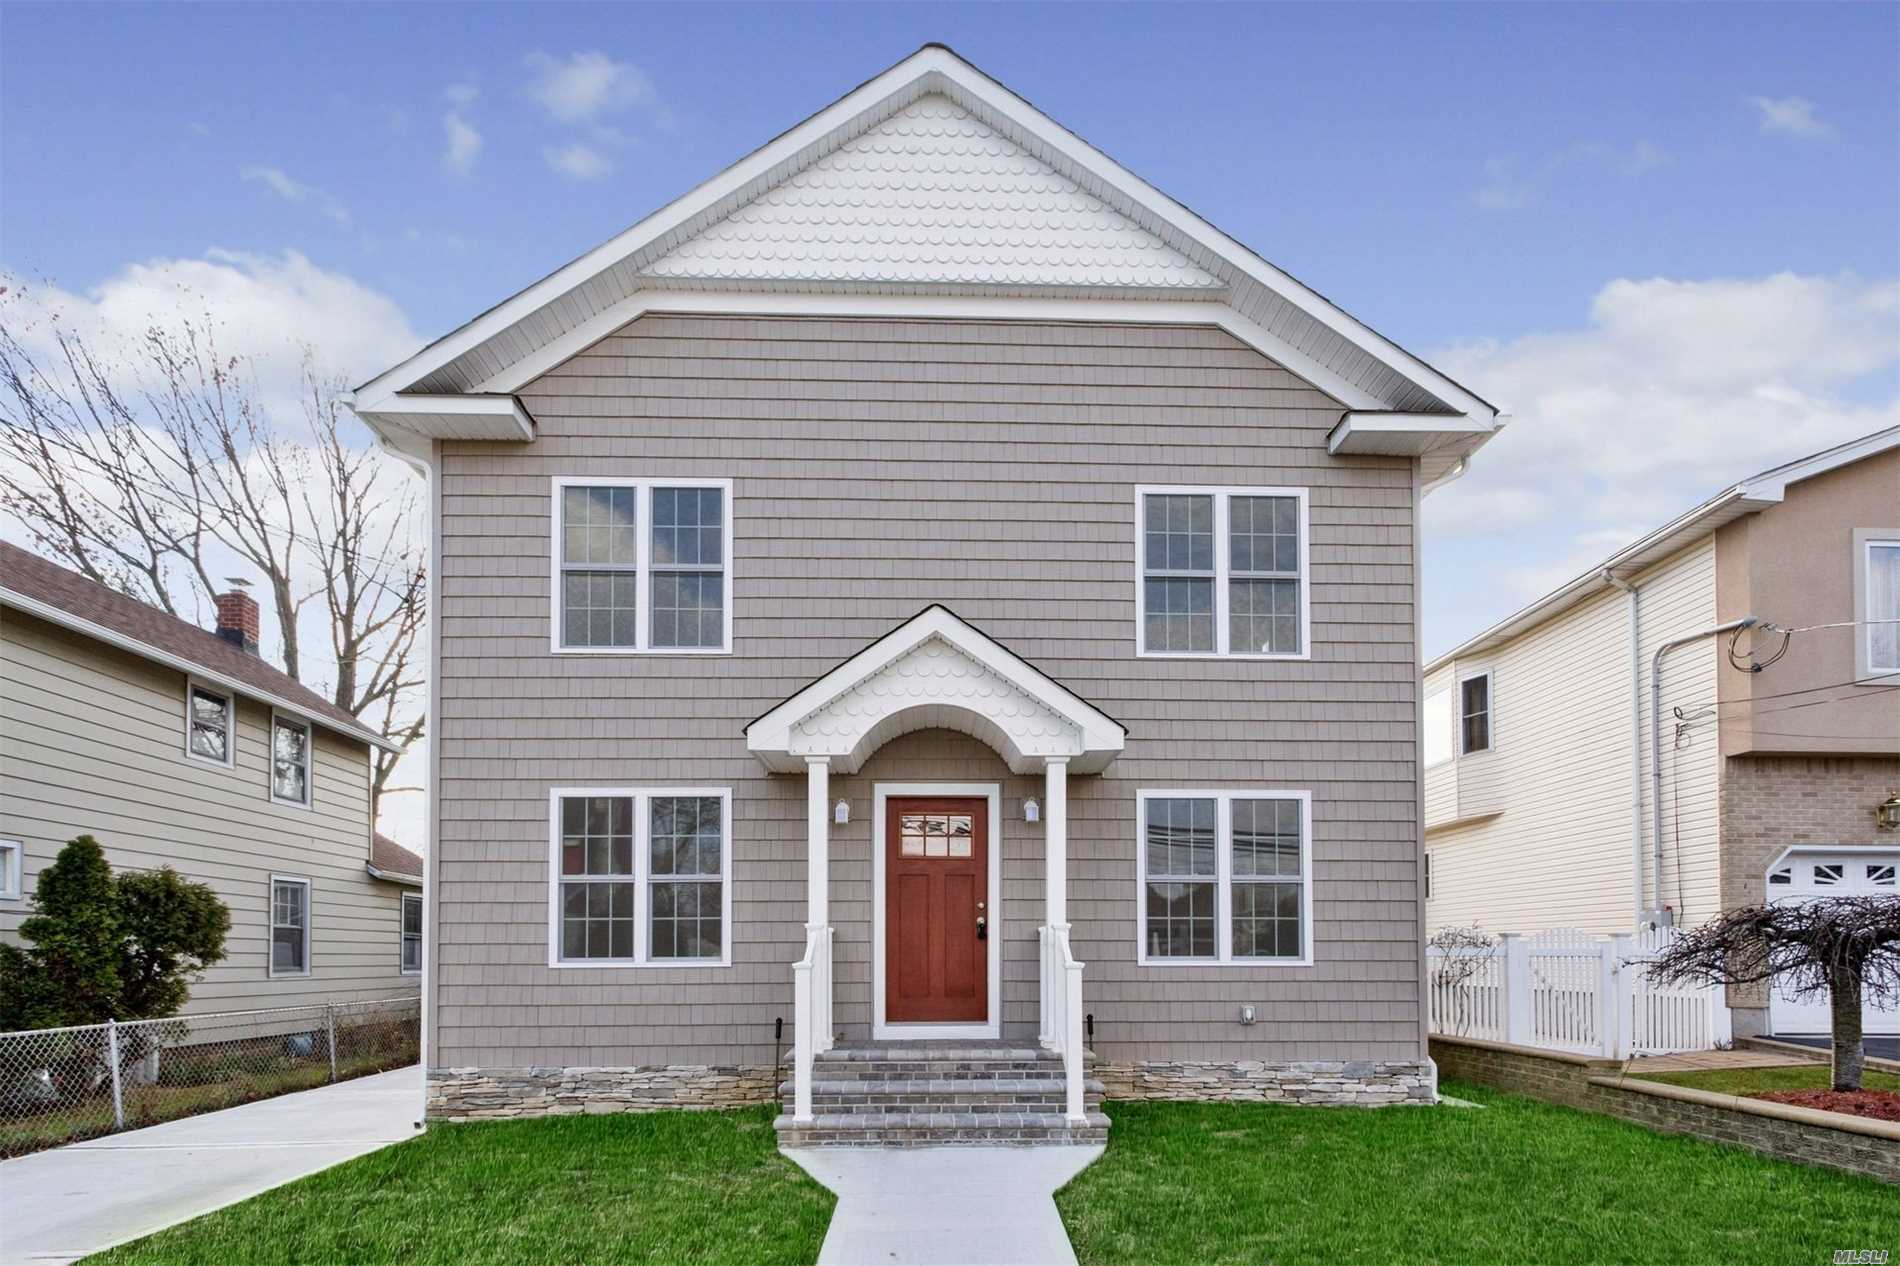 New Construction -Home Features Open Floor Plan On The First Floor With A Granite Kitchen And Ss Appliances, Second Floor Features Master Bedroom With Bath & Finished Walk In Closet, 9 Foot Ceilings Throughout 2nd Floor With Crown Moldings. Hardwood Floors And 2 Zone Central Ac, Finished Basement And Much More. No Flood Insurance Needed. Schedule Your Appointment Today!!